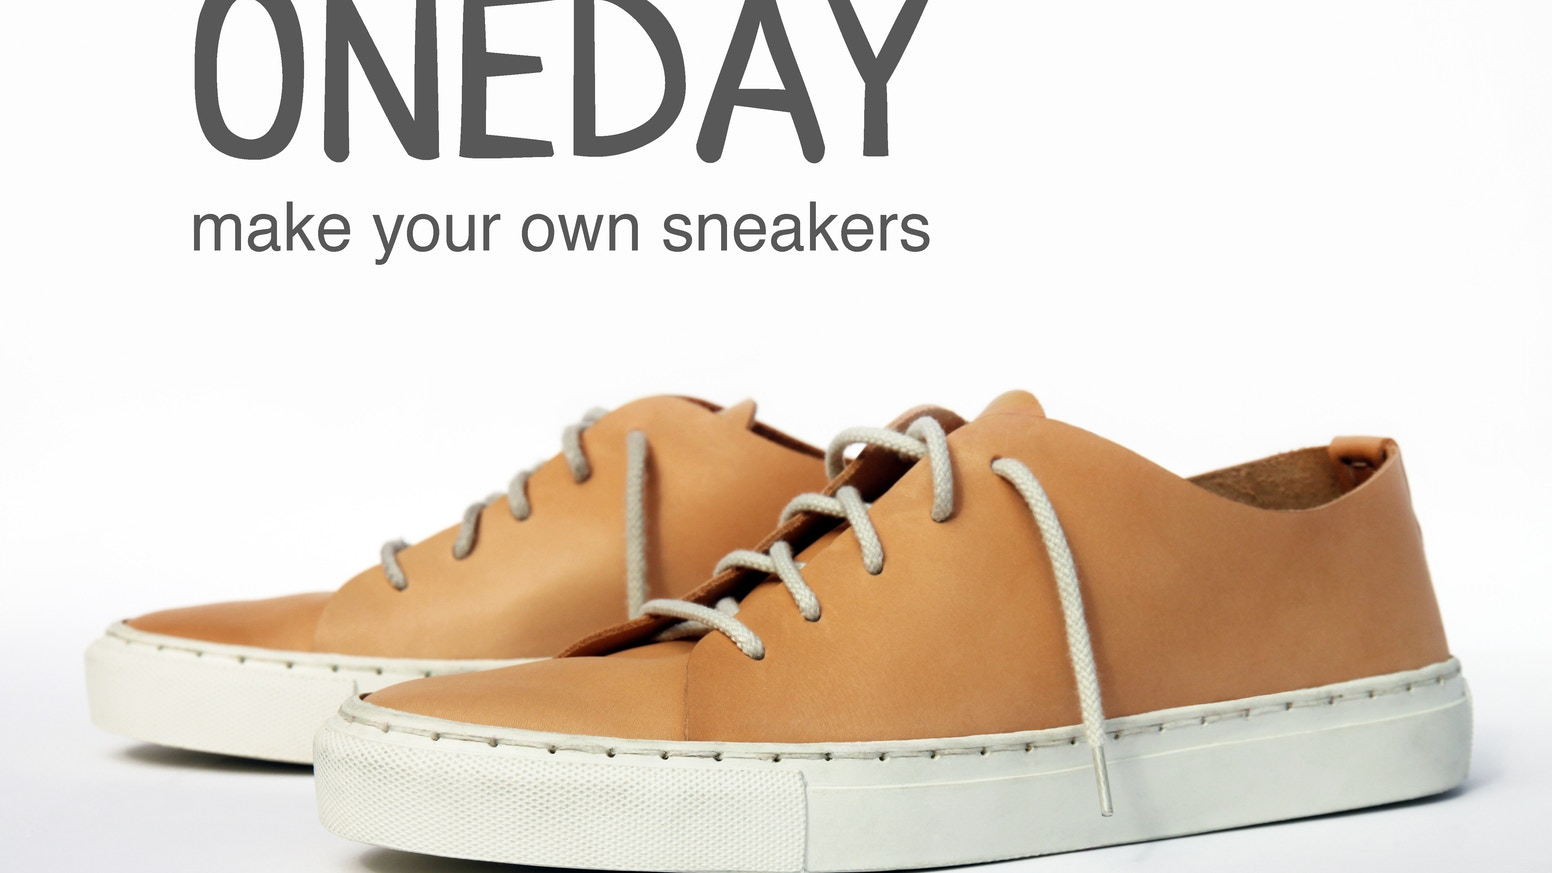 Make your own sneakers, in just one day!